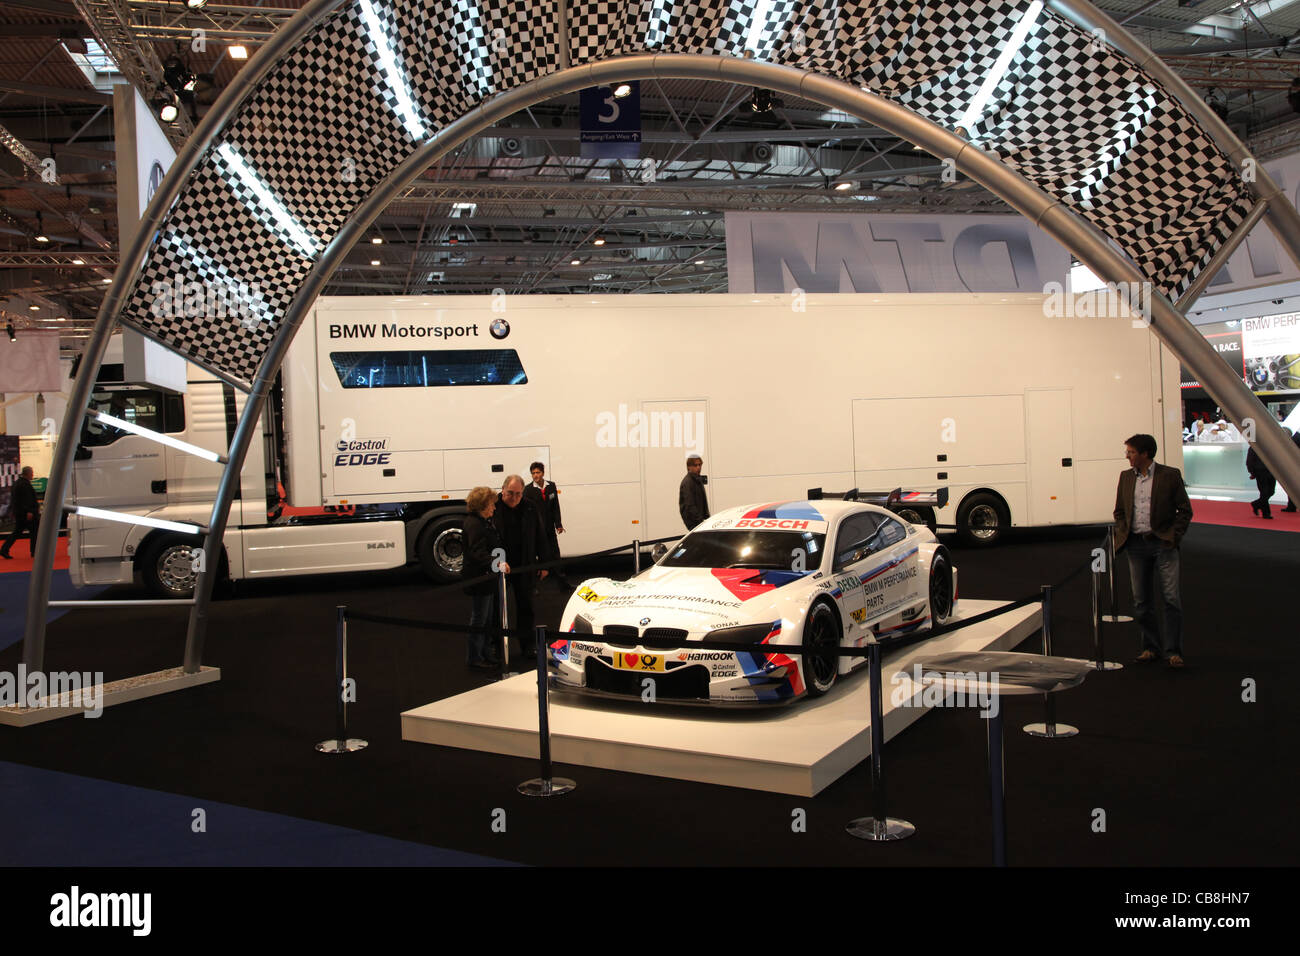 BMW Motorsport stand at the Essen Motor Show in Essen, Germany, on November 29, 2011 - Stock Image